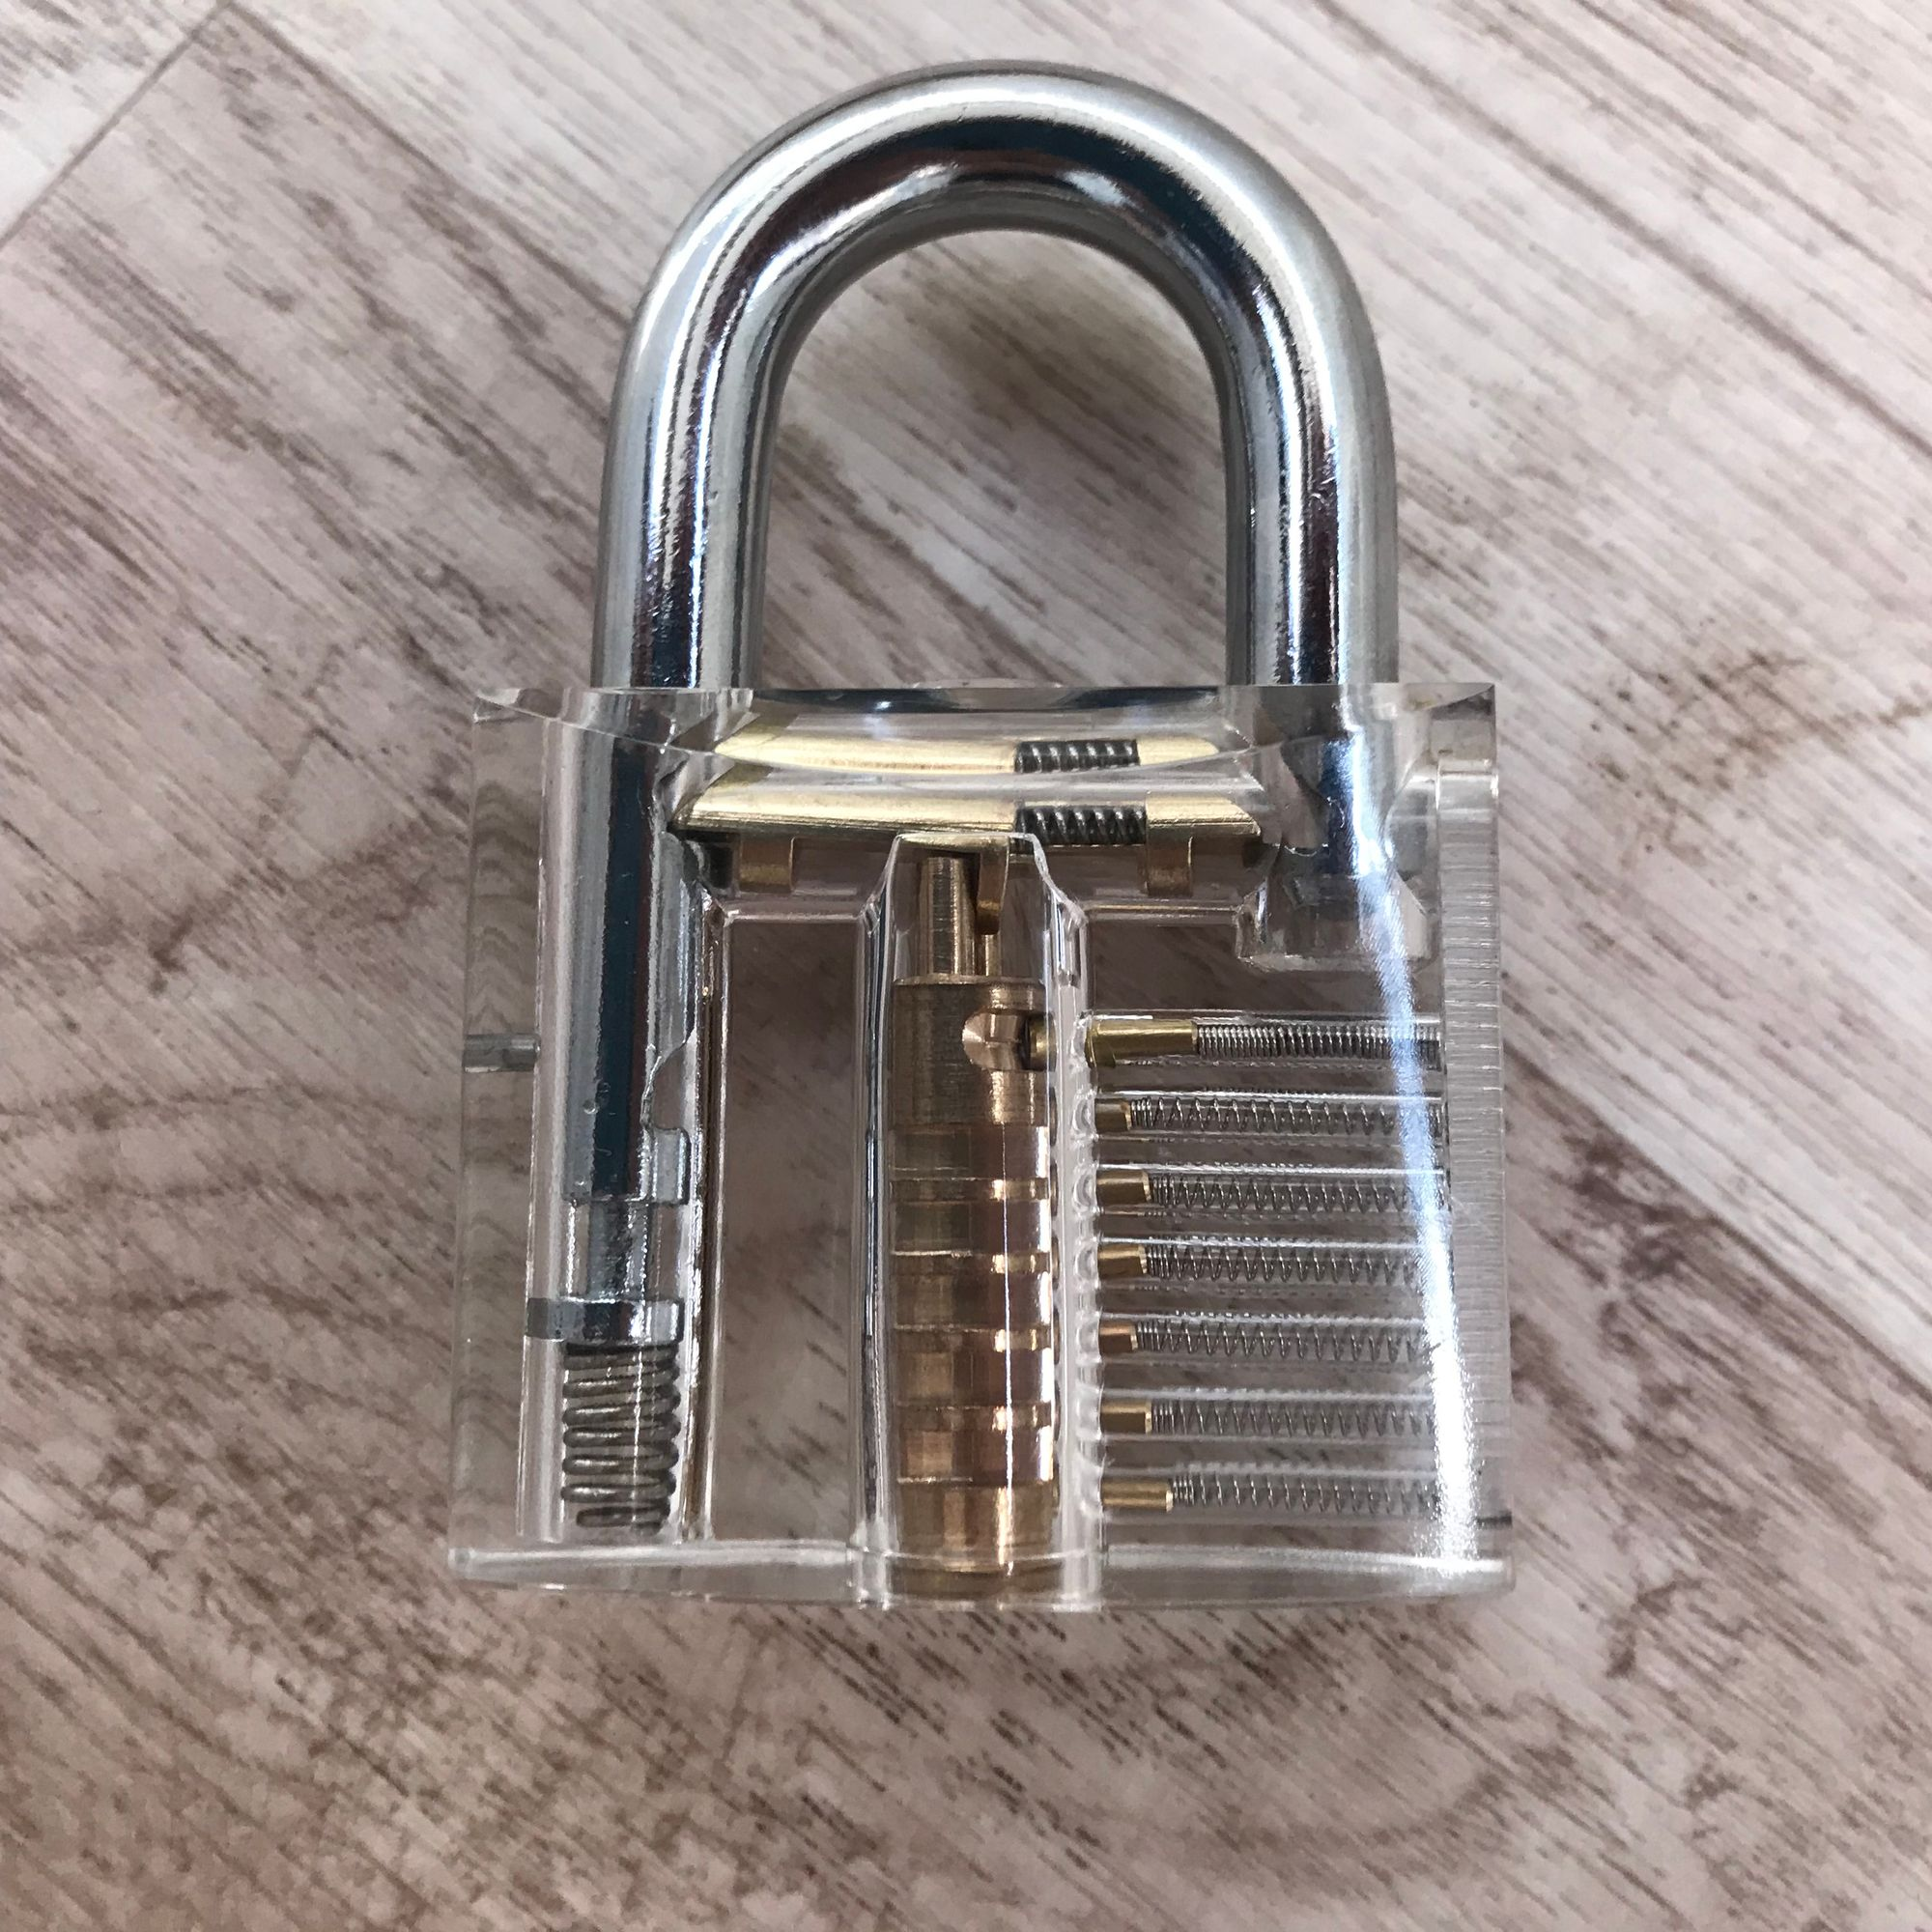 The Lock Picking Hobbyist